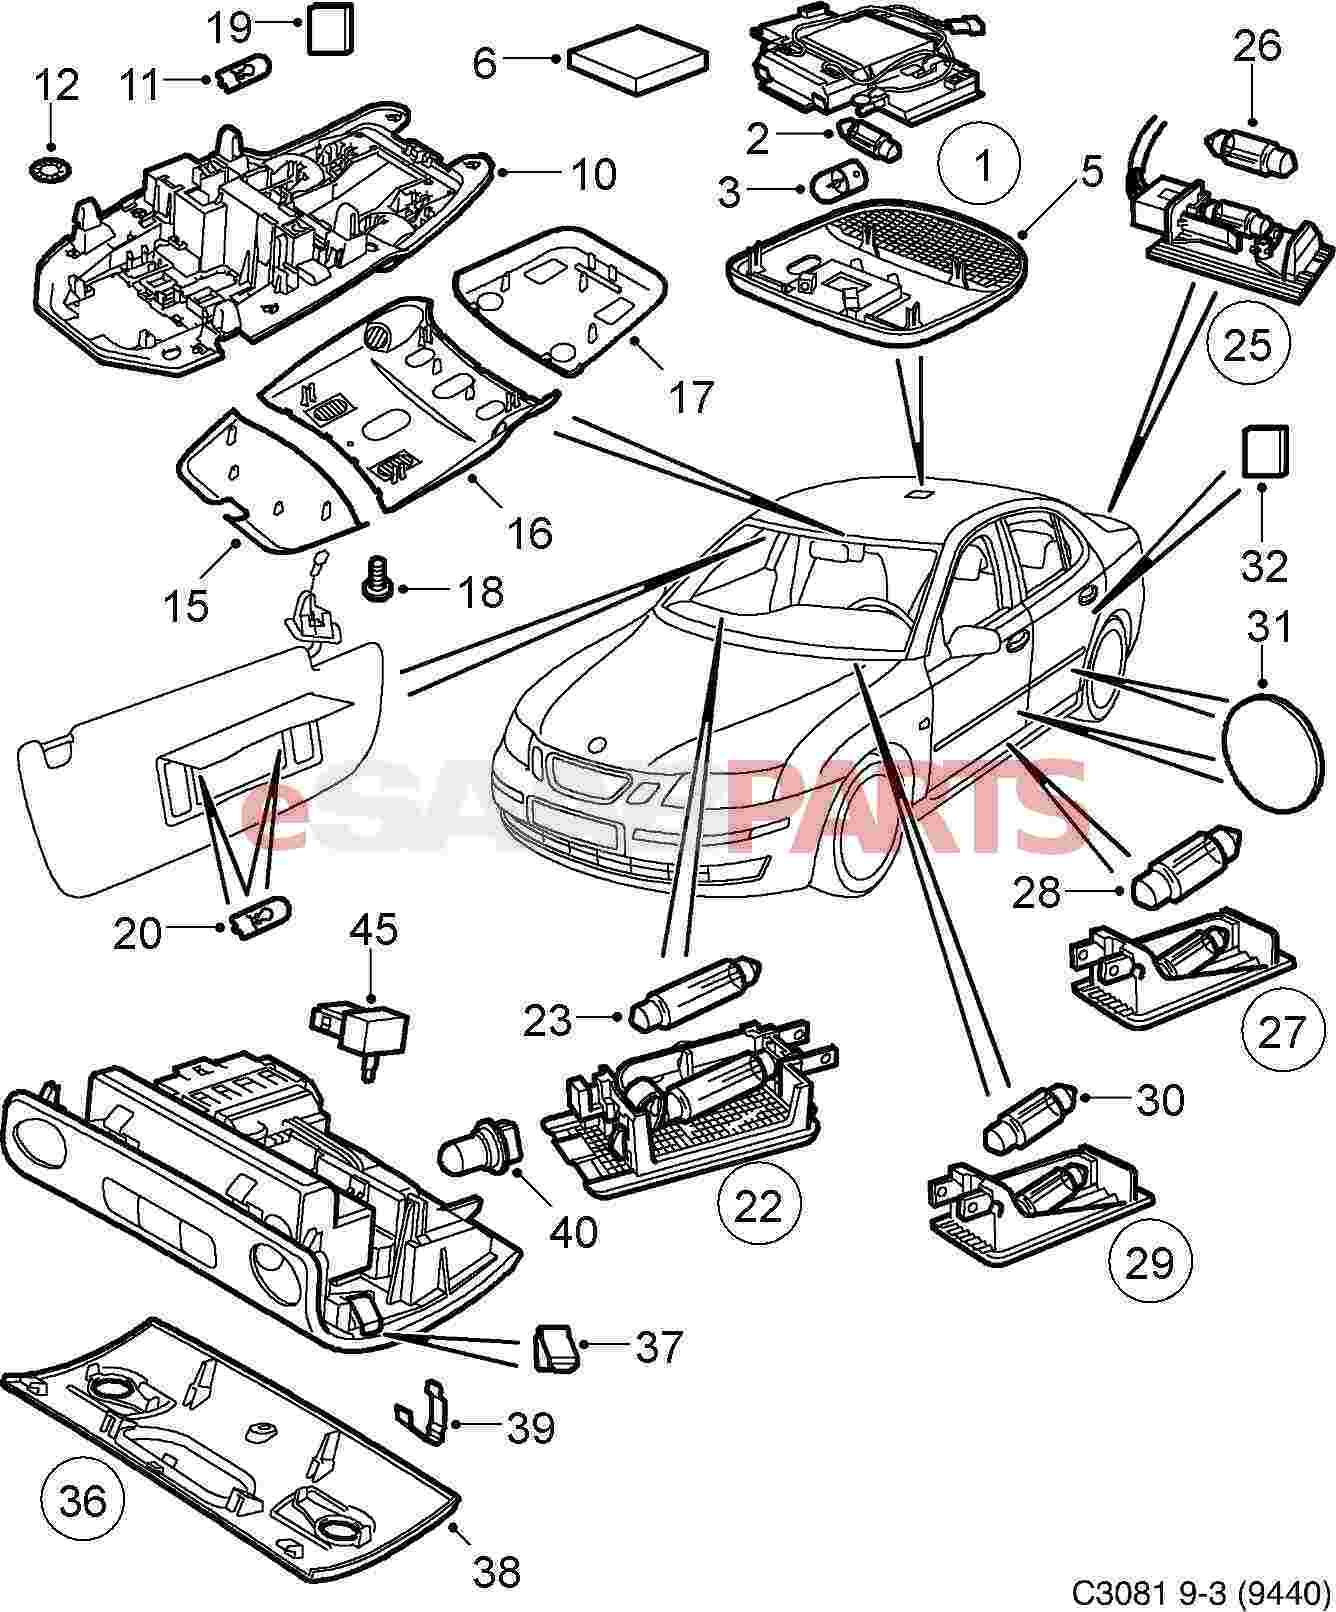 Interior Auto Body Parts Auto Parts Diagrams Car Part